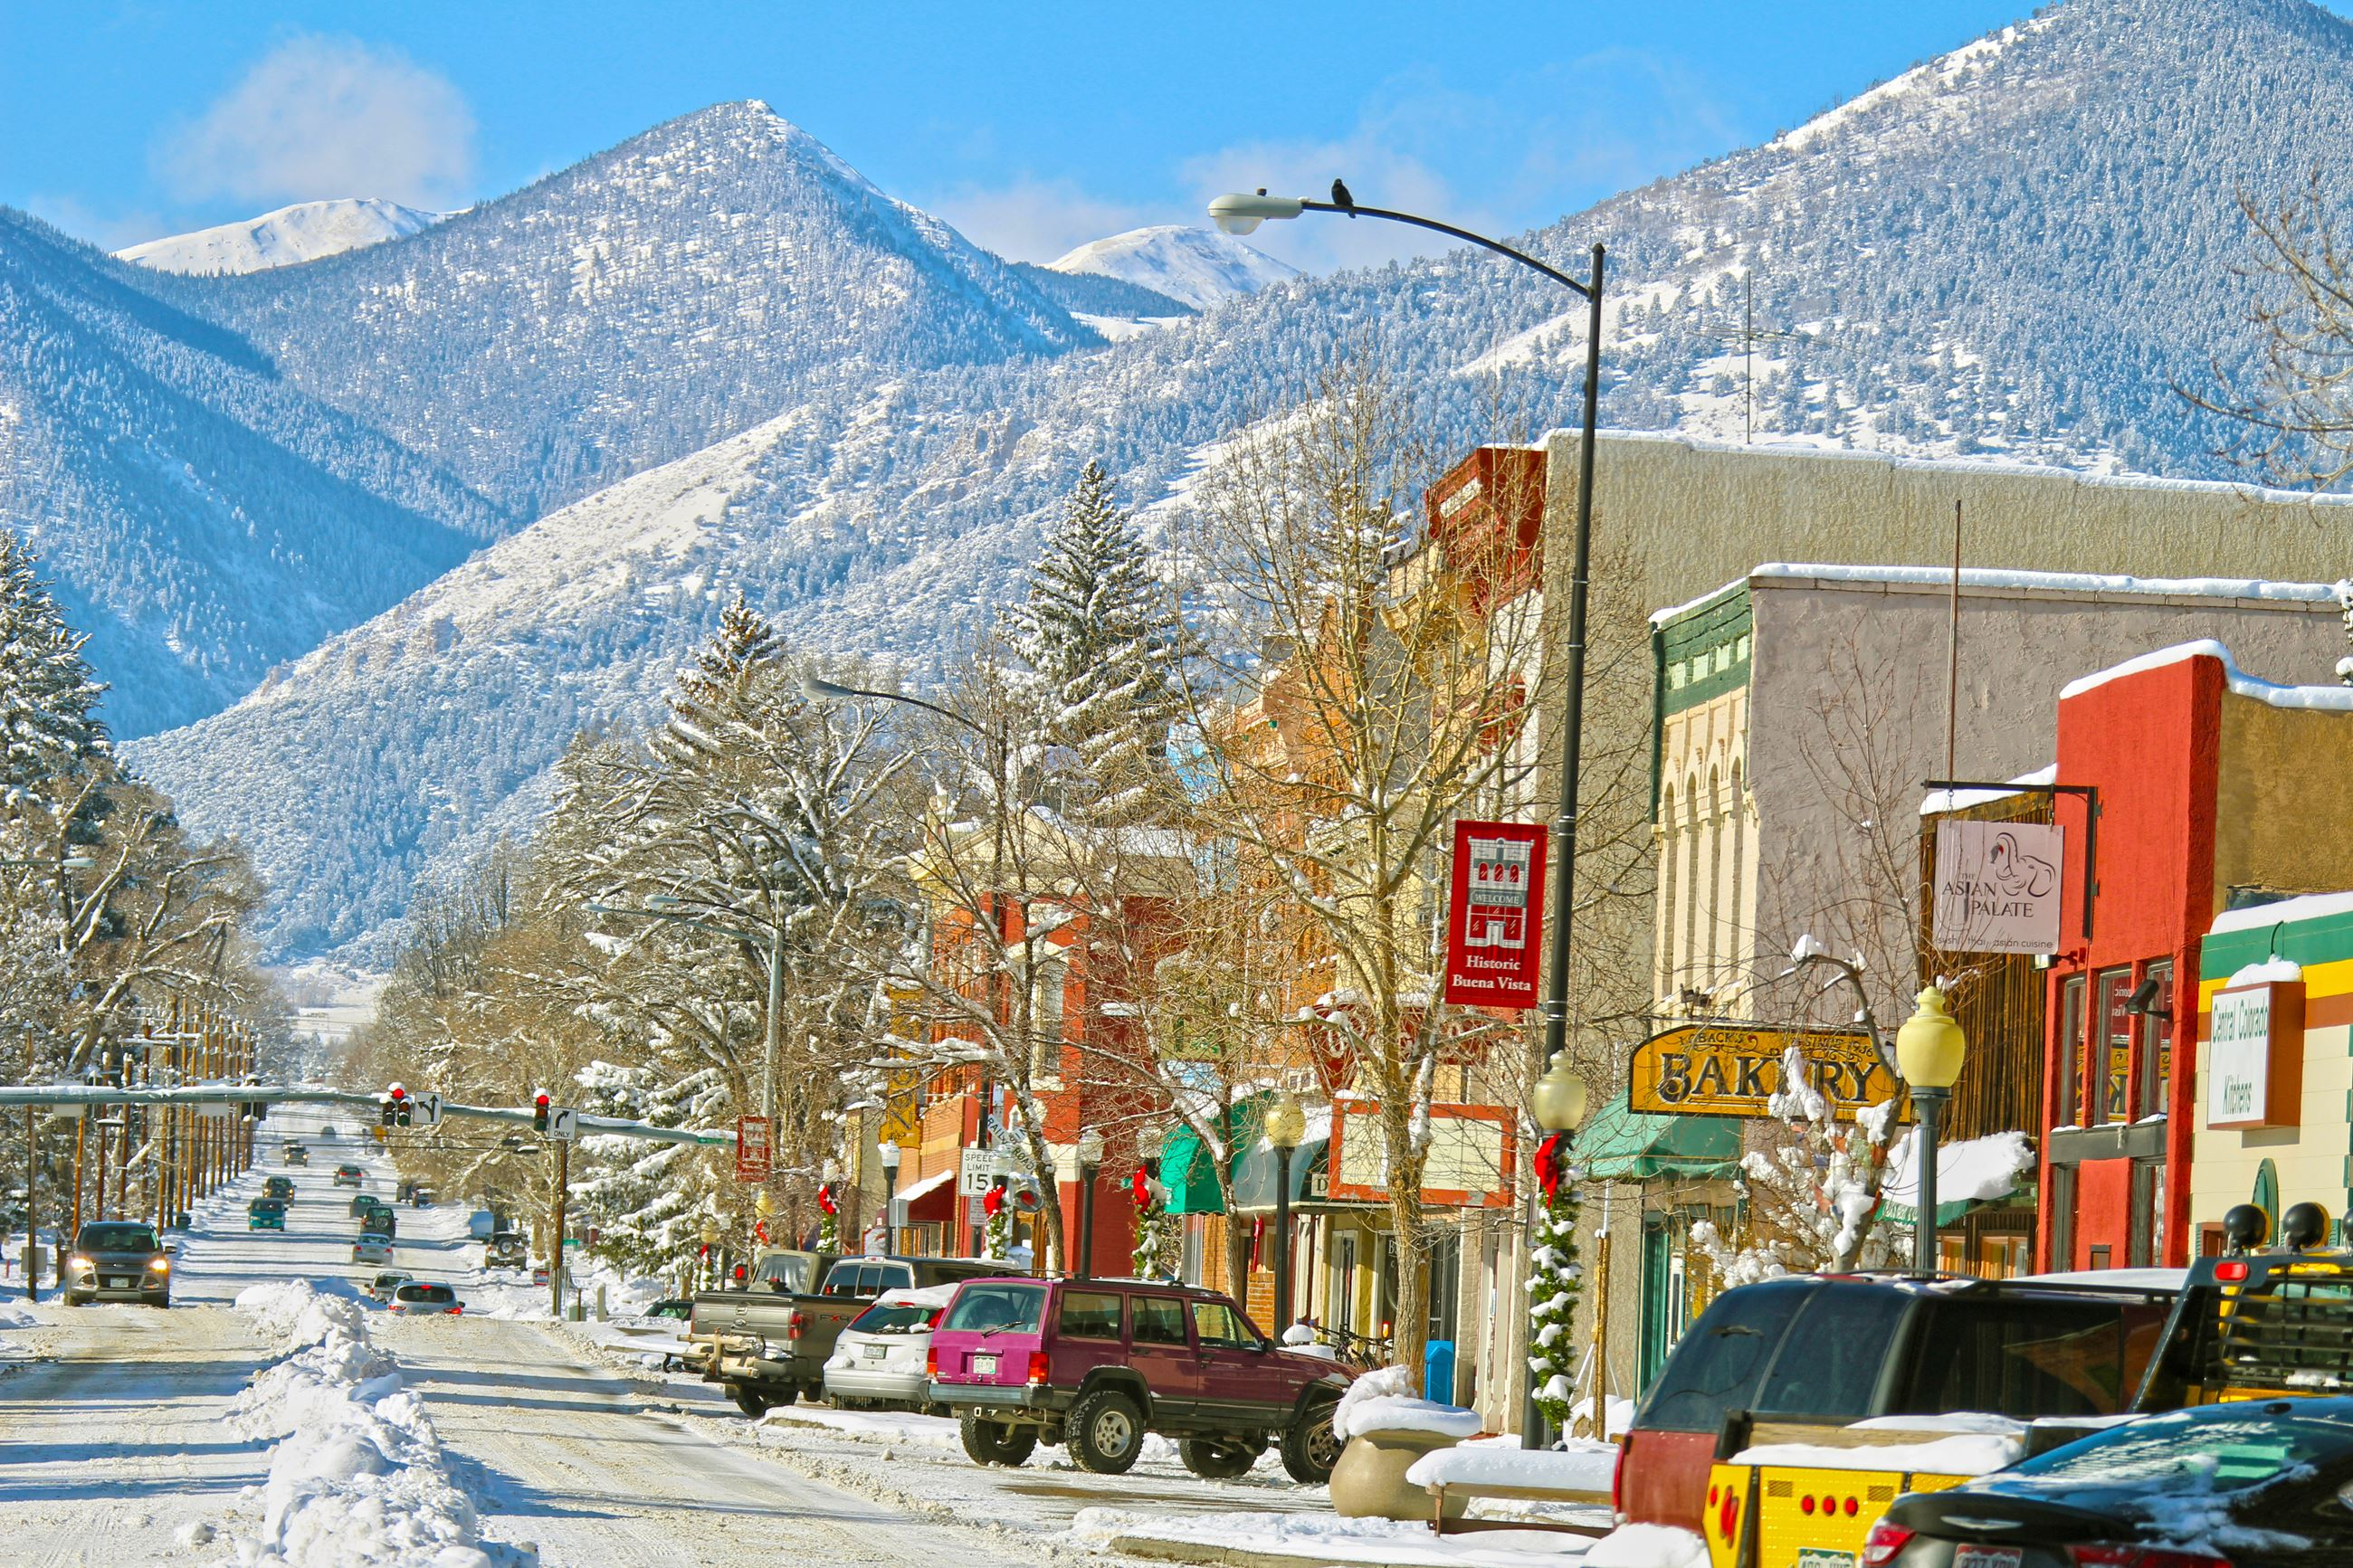 Winter and Holiday Season in downtown Buena Vista, Colorado